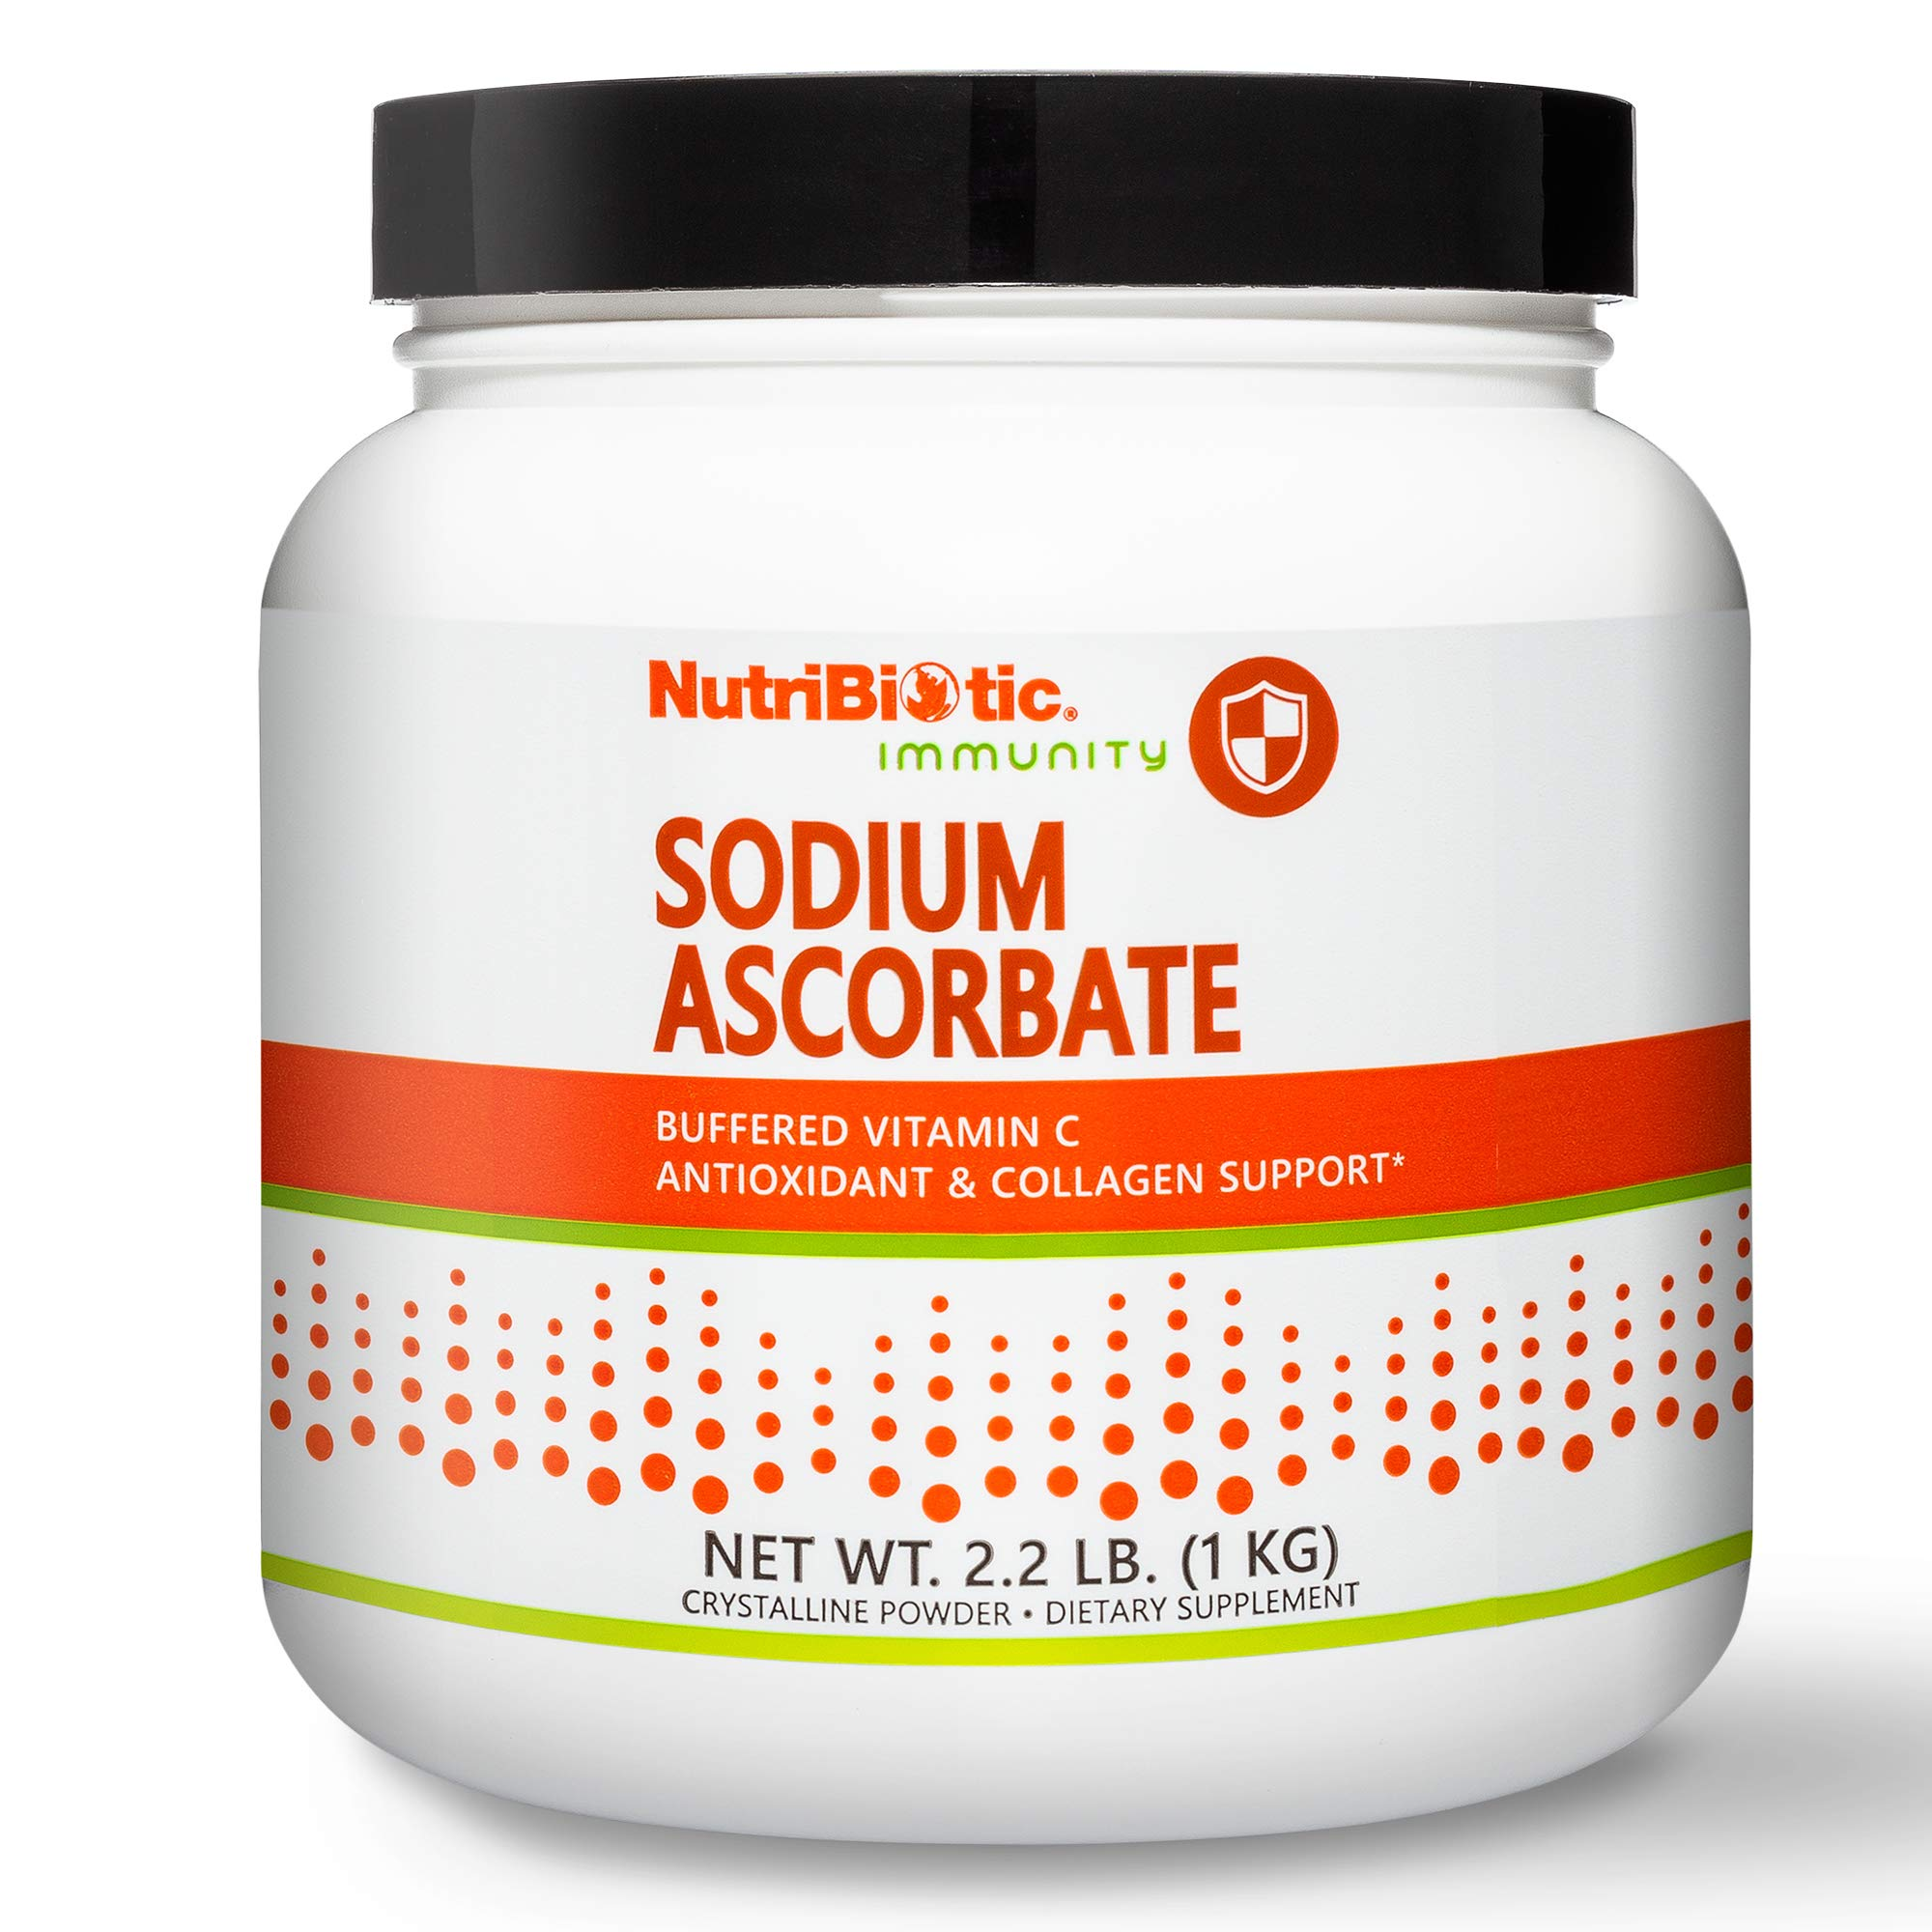 Nutribiotic - Sodium Ascorbate Buffered Vitamin C Powder, 2.2 pound | Vegan, Non Acidic & Easier on Digestion than Ascorbic Acid | Essential Immune Support & Antioxidant Supplement | Gluten & GMO Free